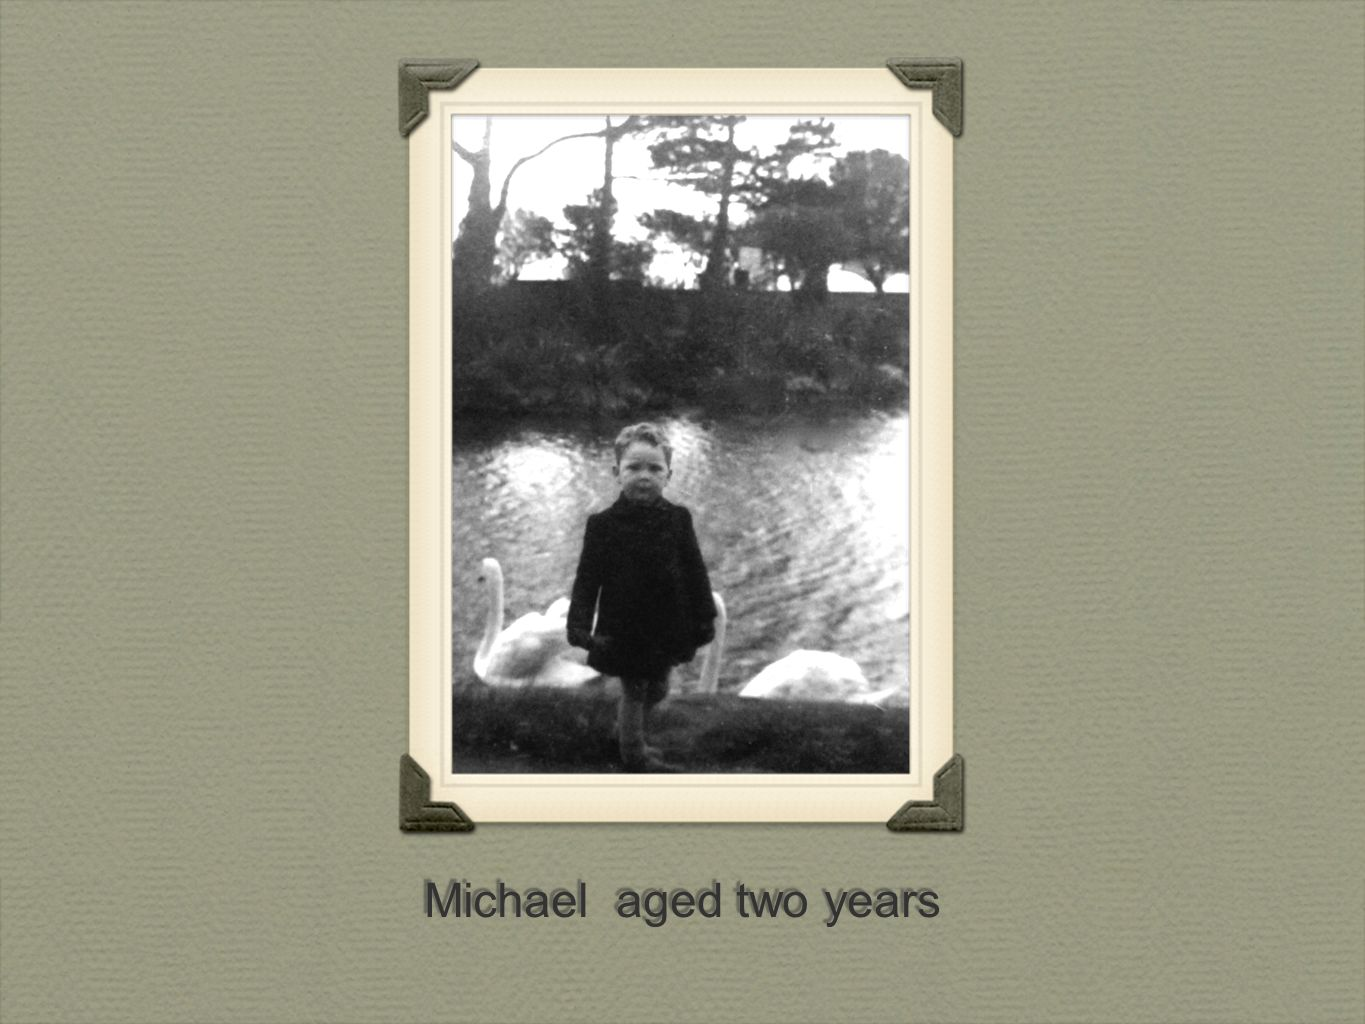 Michael aged two years